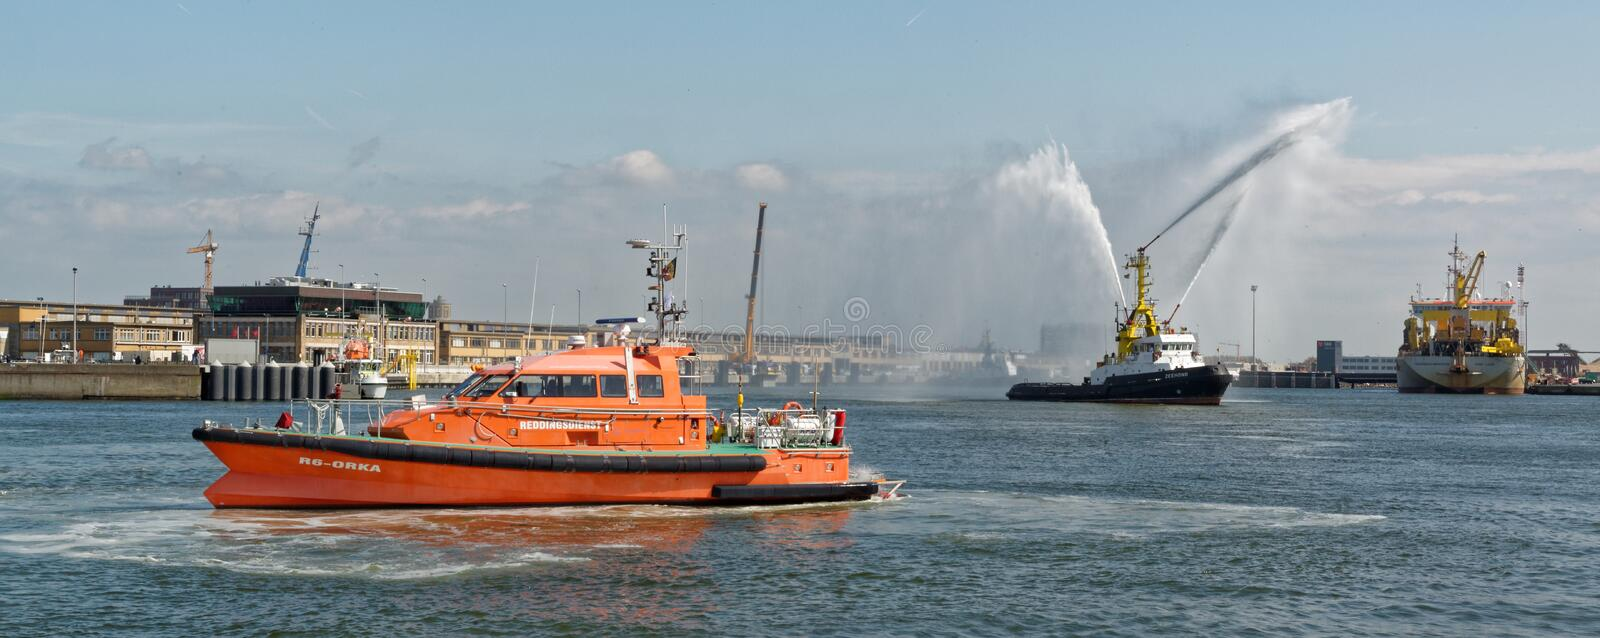 Fire hose boat `The Zeehond` spraying water in Oostende royalty free stock photo